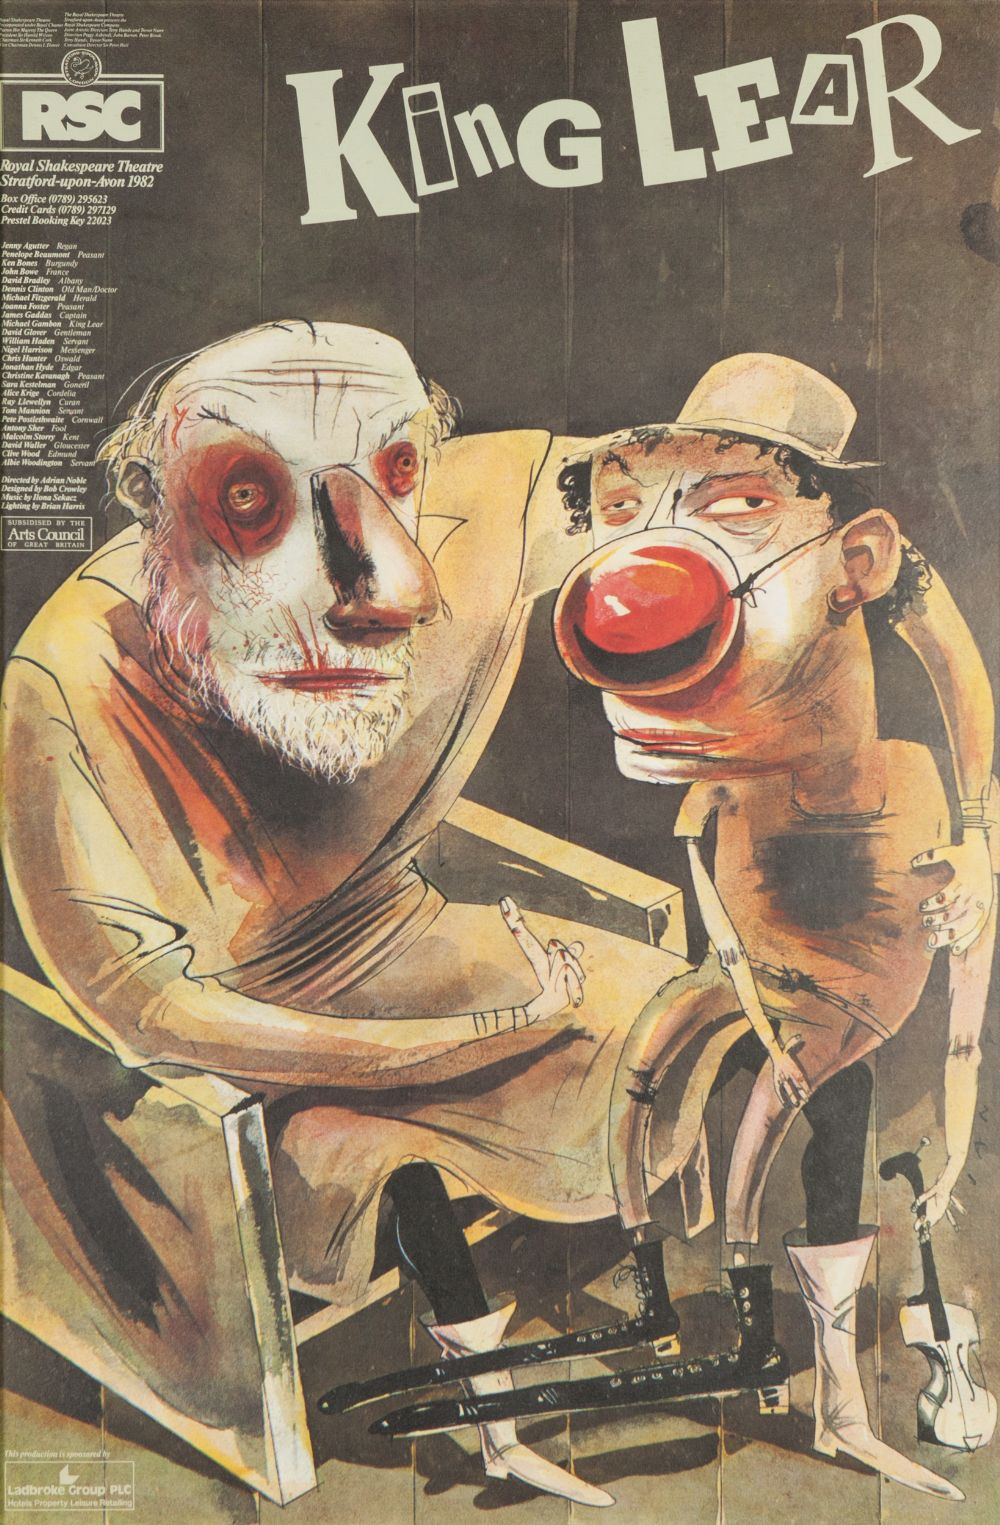 Lot 47 - COLLECTION OF FOUR THEATRE POSTERS TO INCLUDE RSC King Lear 1982; Arroyo Klasen Velickovic 1982;